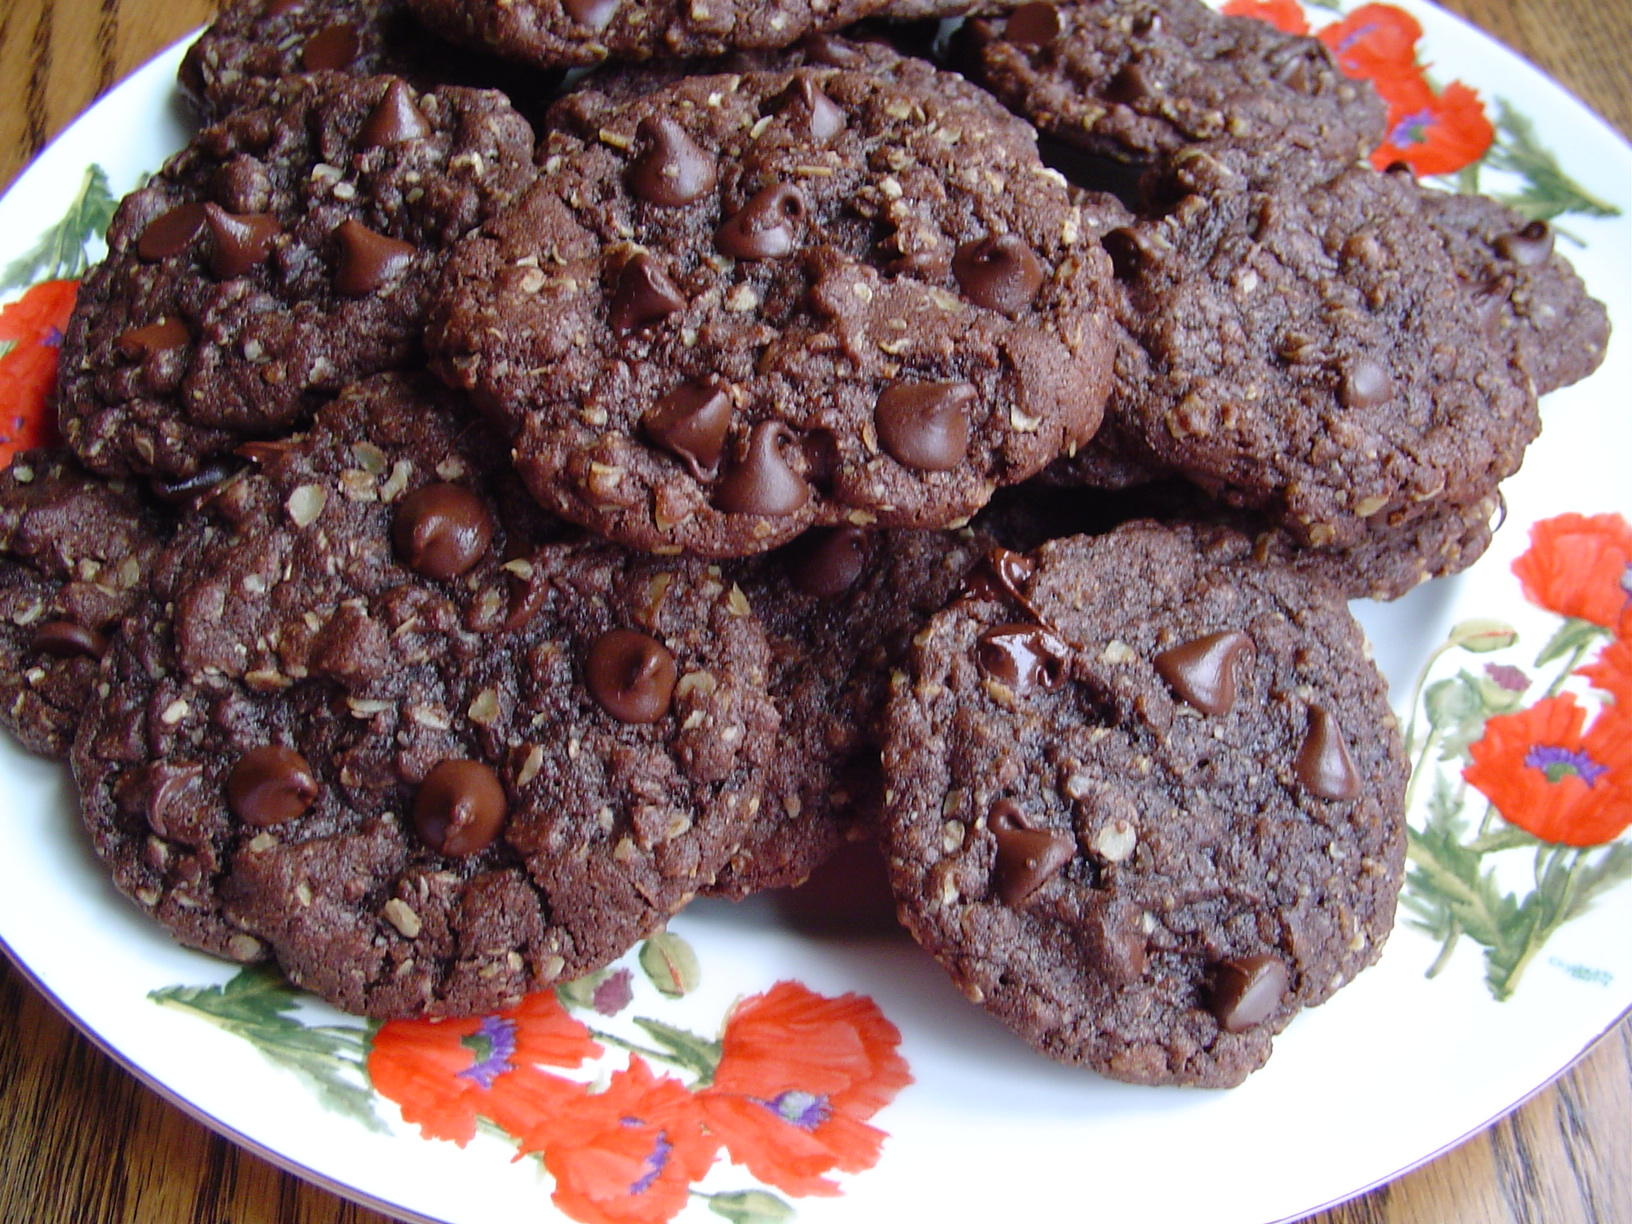 Chocolate Cowboy Cookies